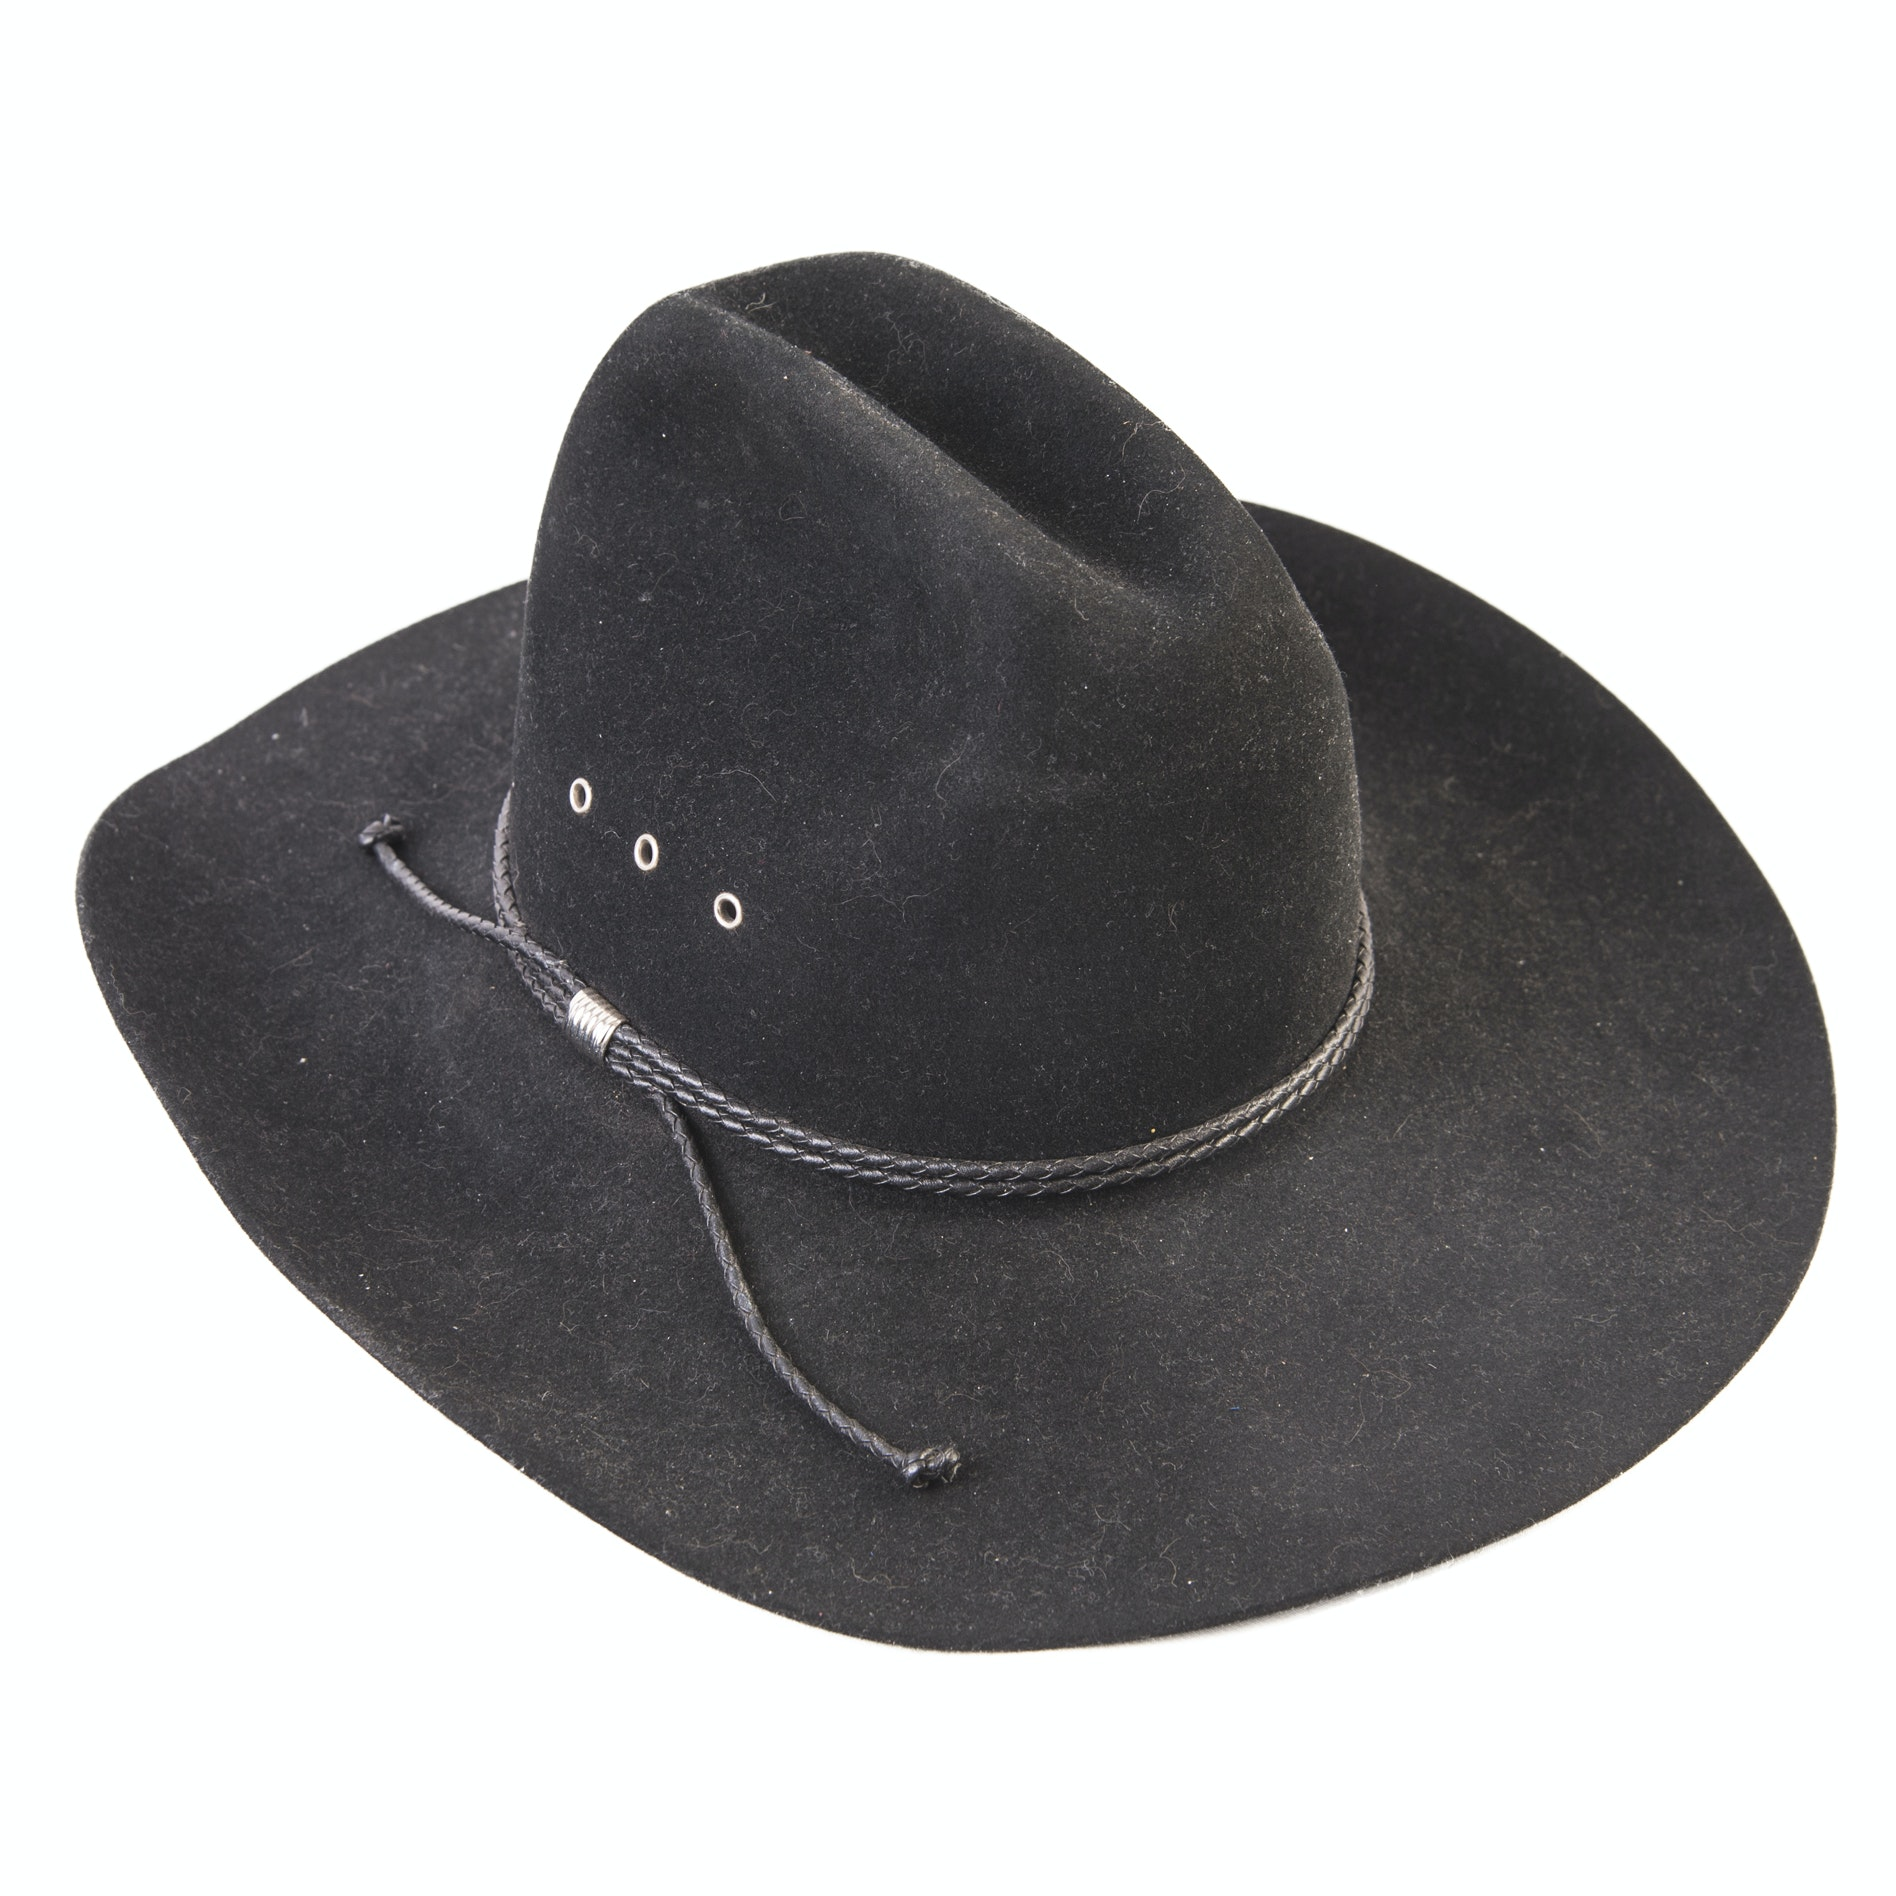 Stetson Black 4X Felted Beaver Cowboy Hat with Braided Band